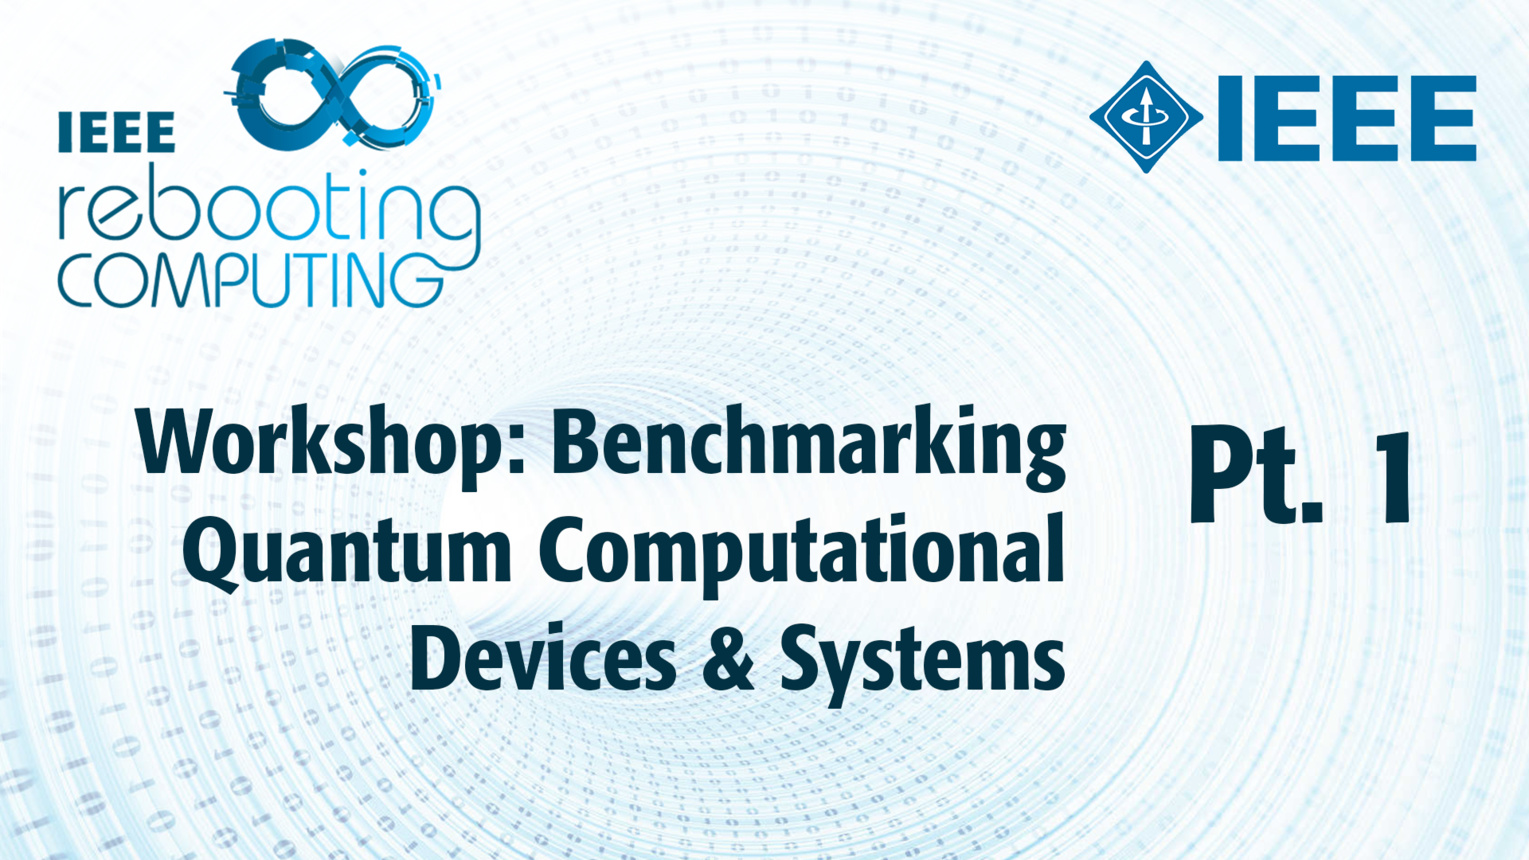 Part 1: Workshop on Benchmarking Quantum Computational Devices & Systems - ICRC 2018